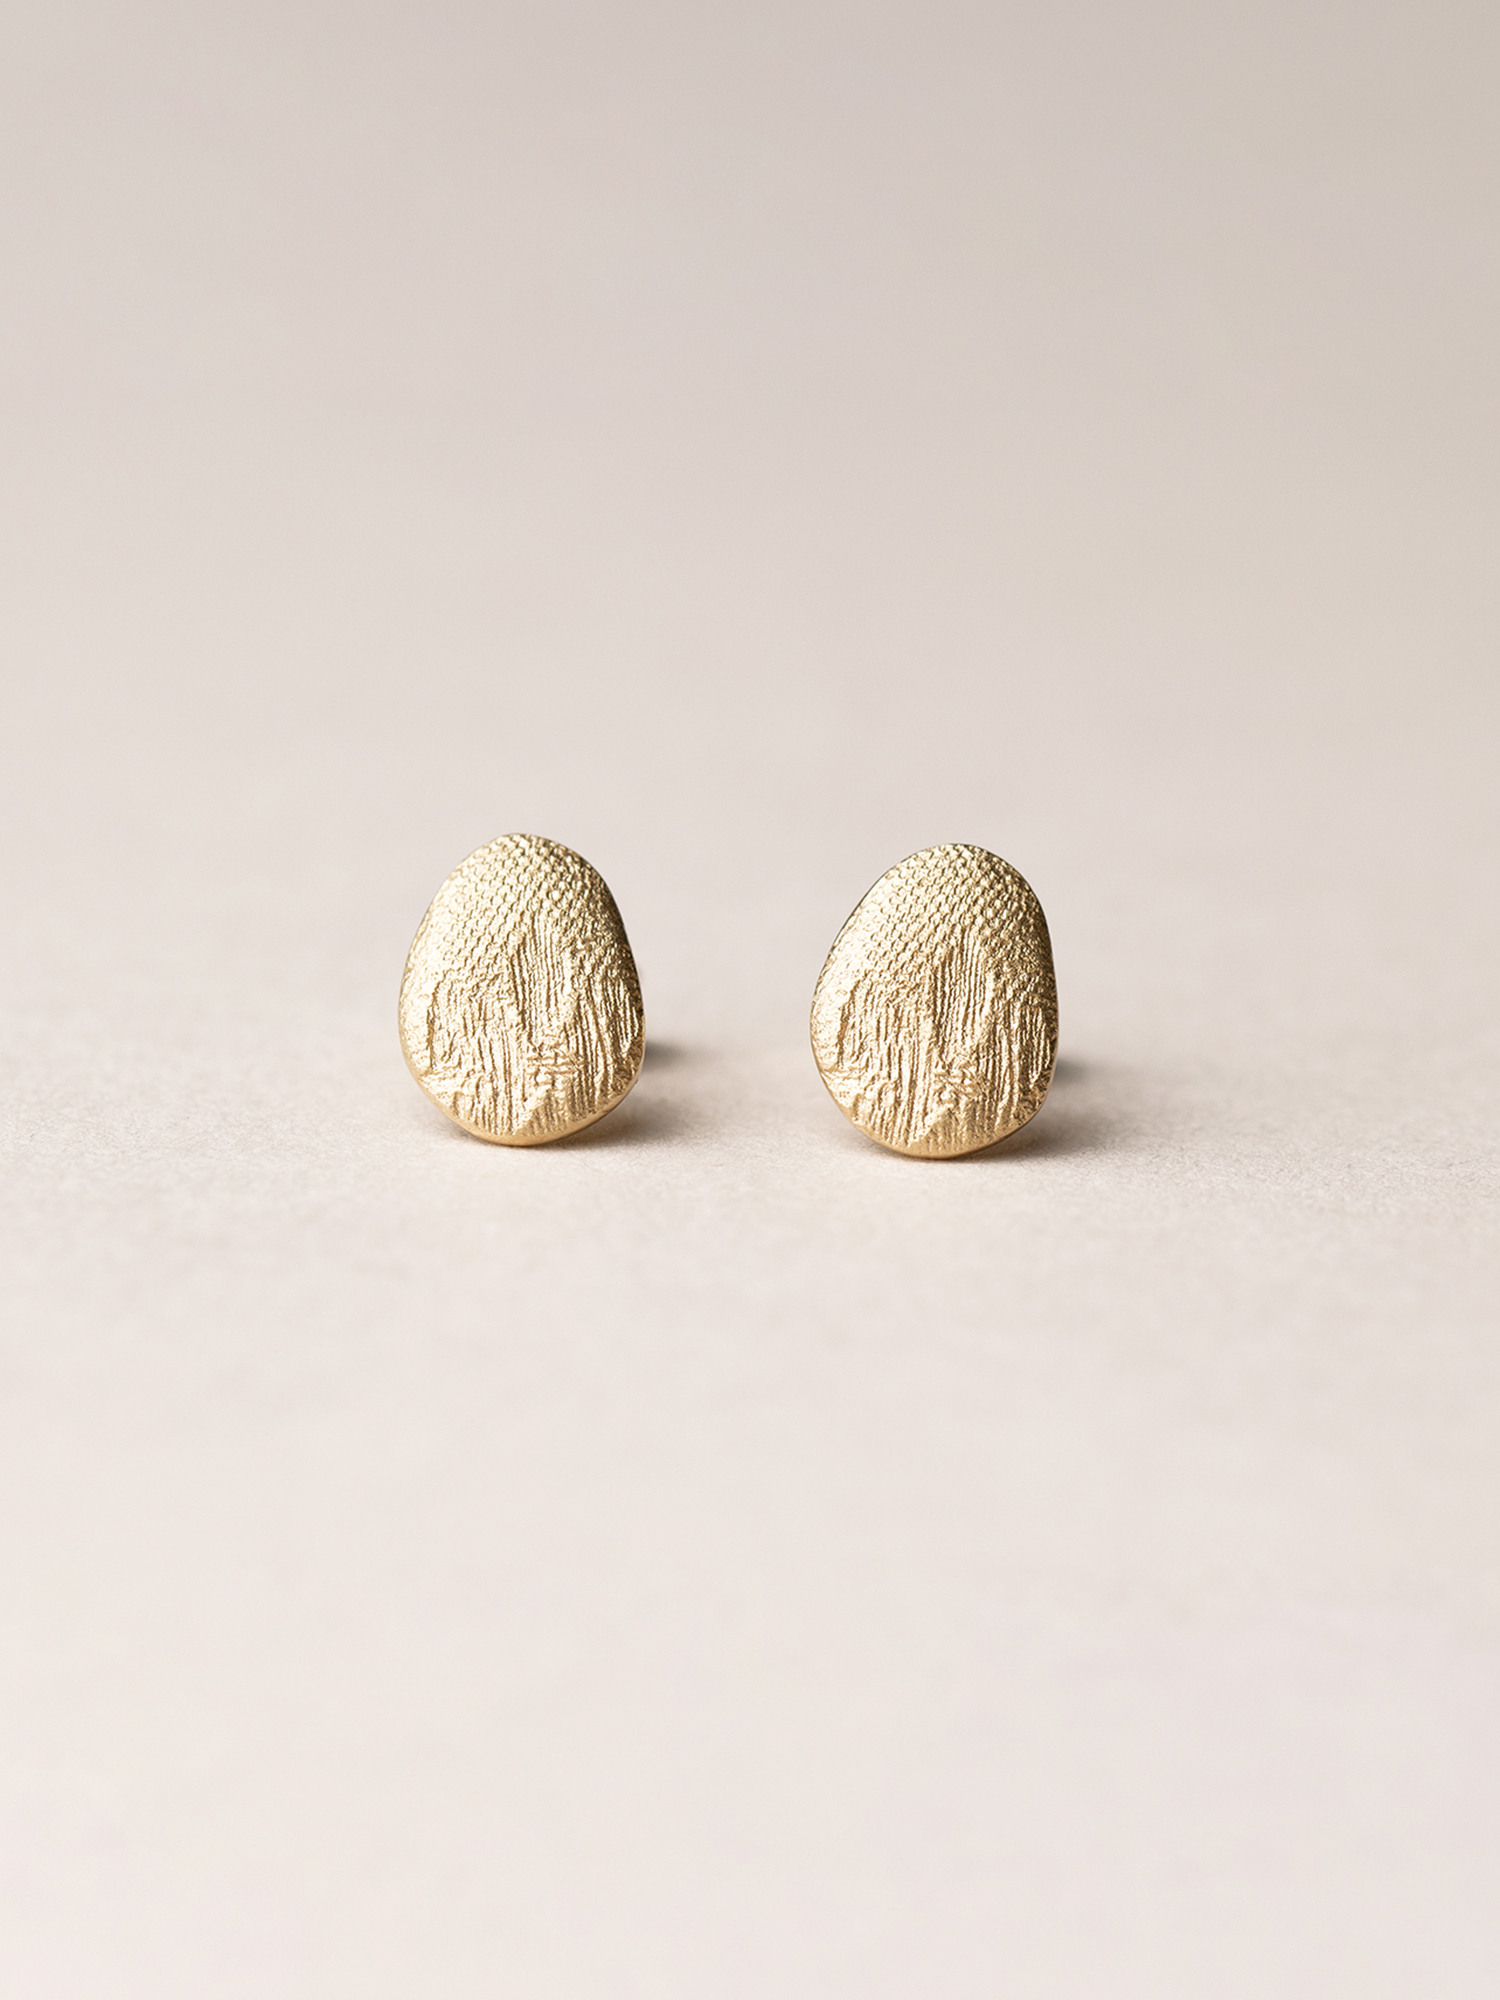 Ovale Amia-Ohrstecker in 585 Gelbgold  Amia, oval stud earrings in 14kt gold